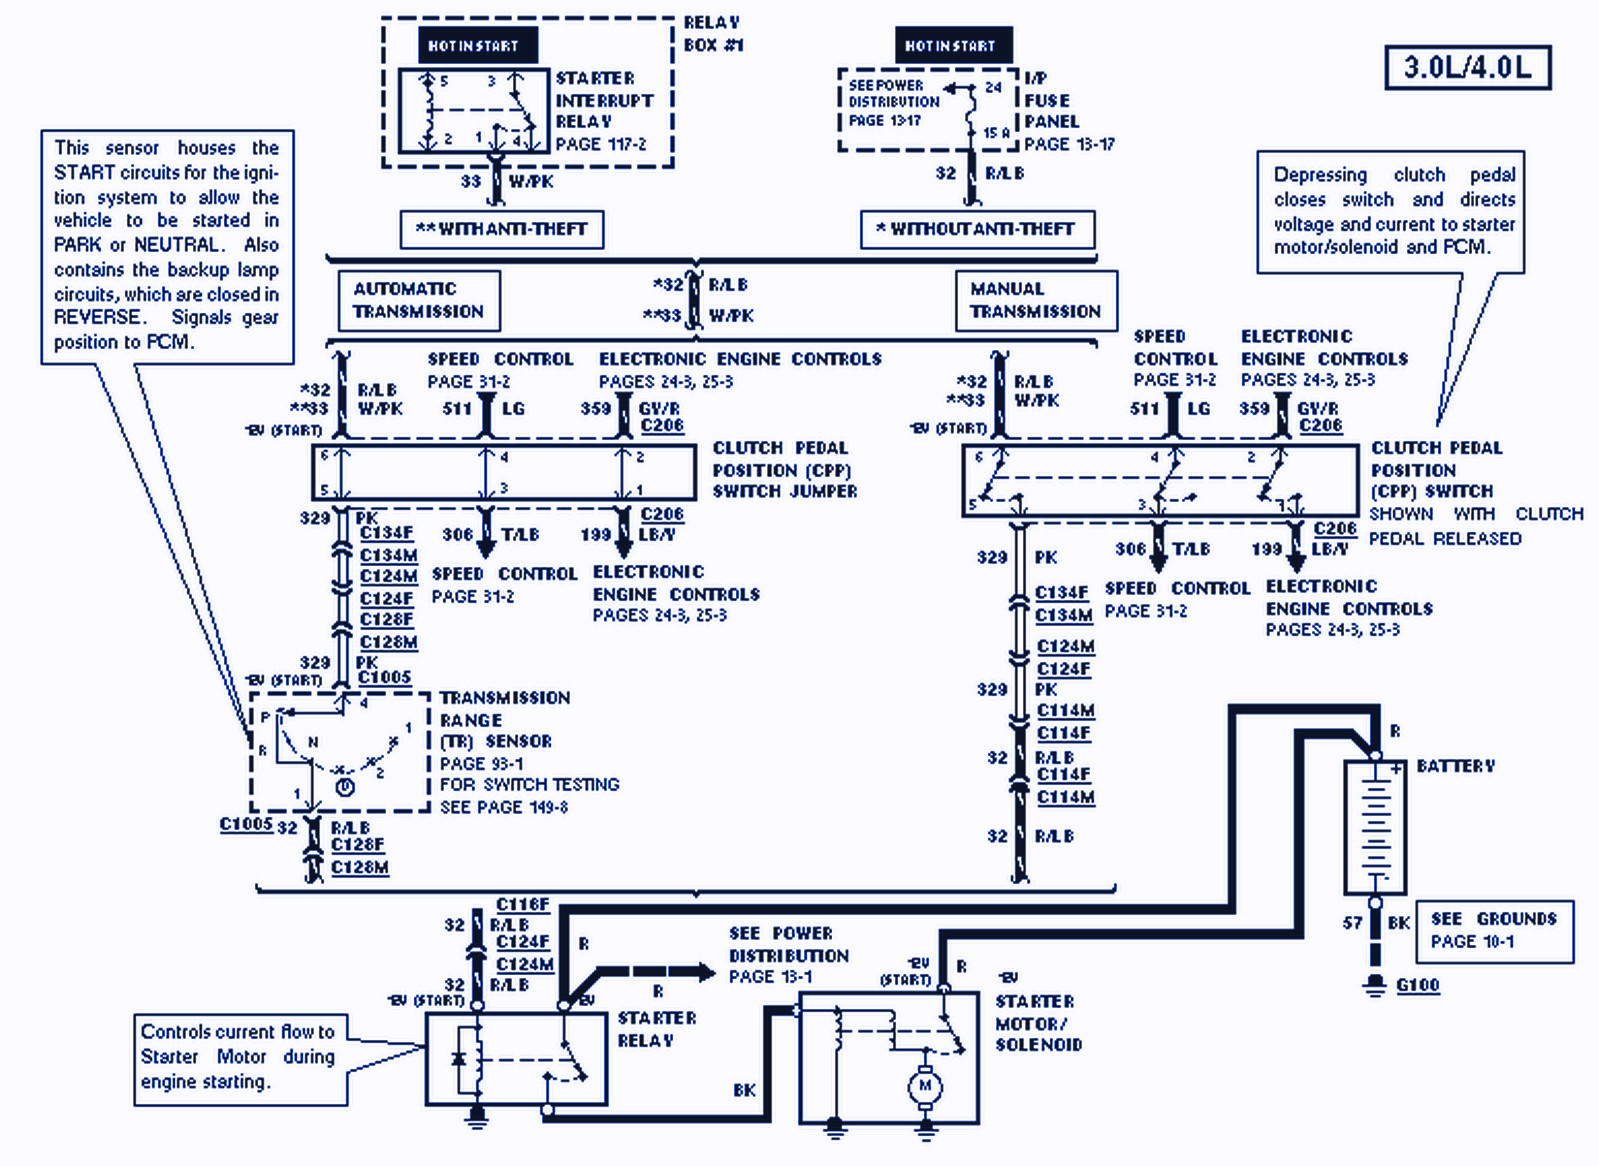 1995 Ford Ranger Wiring Diagram | Auto Wiring Diagrams